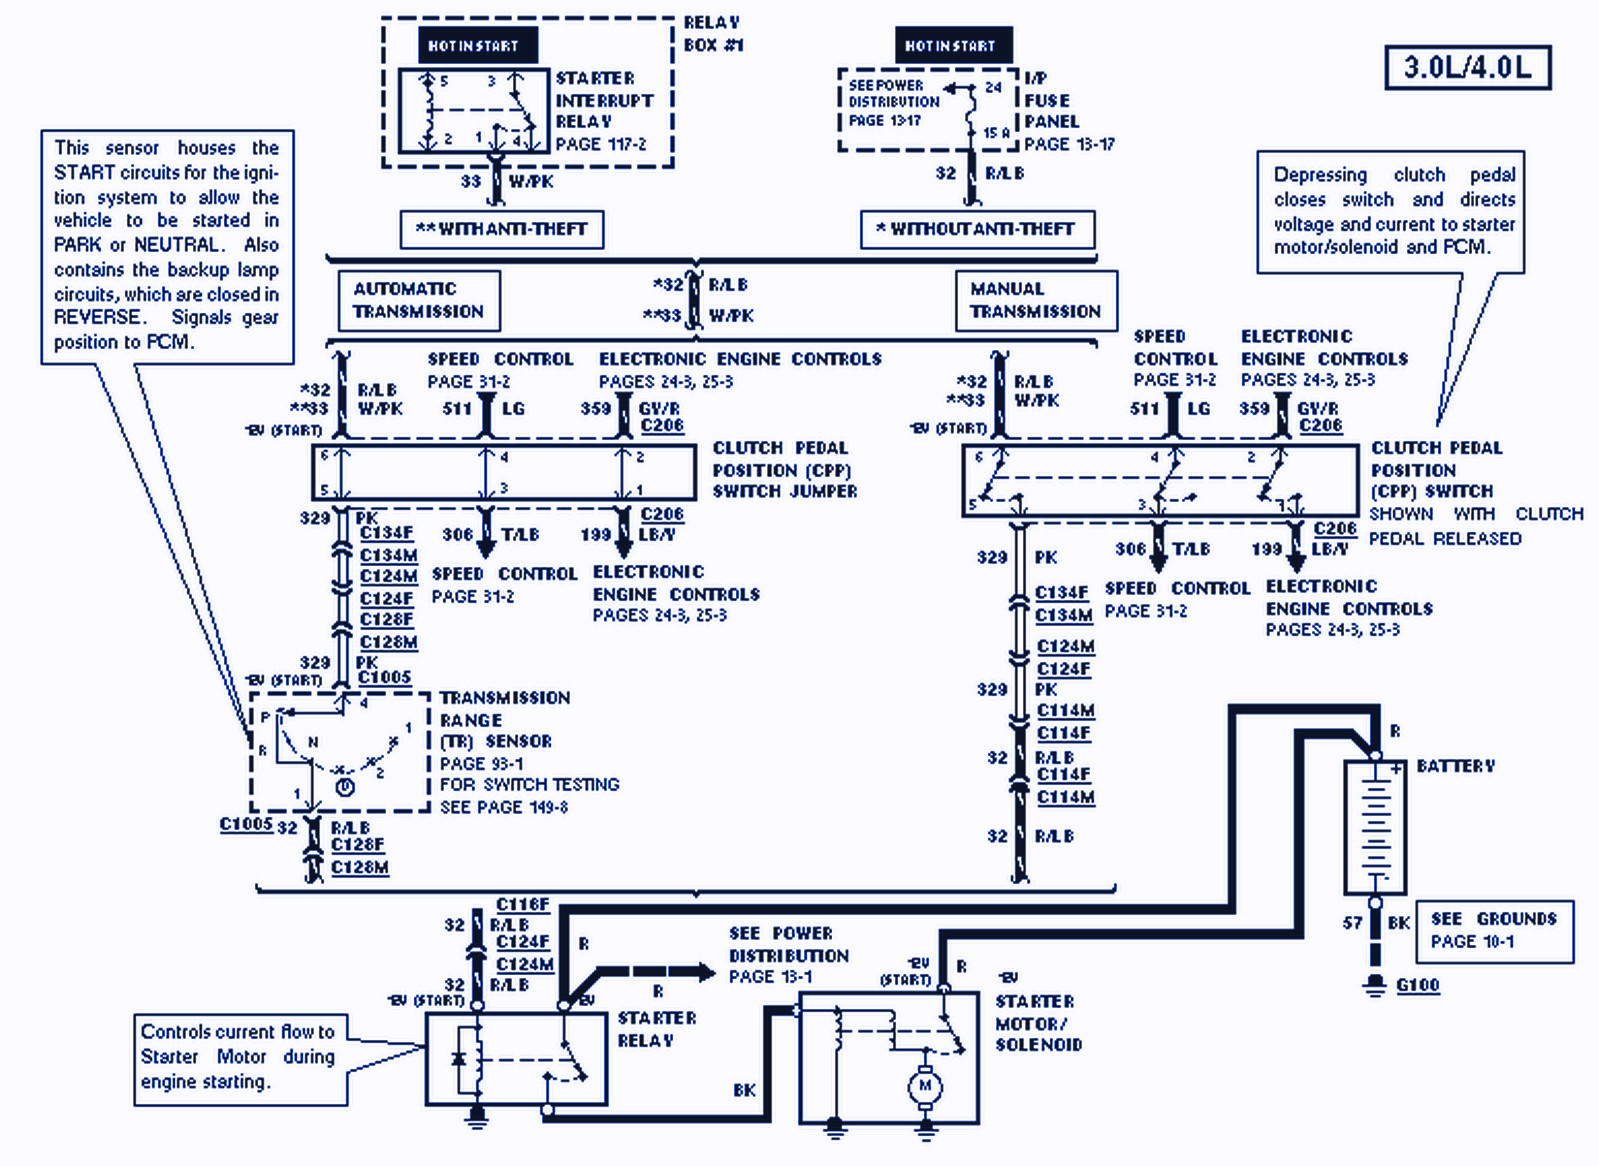 1995 Ford Ranger Wiring Diagram | Auto Wiring Diagrams